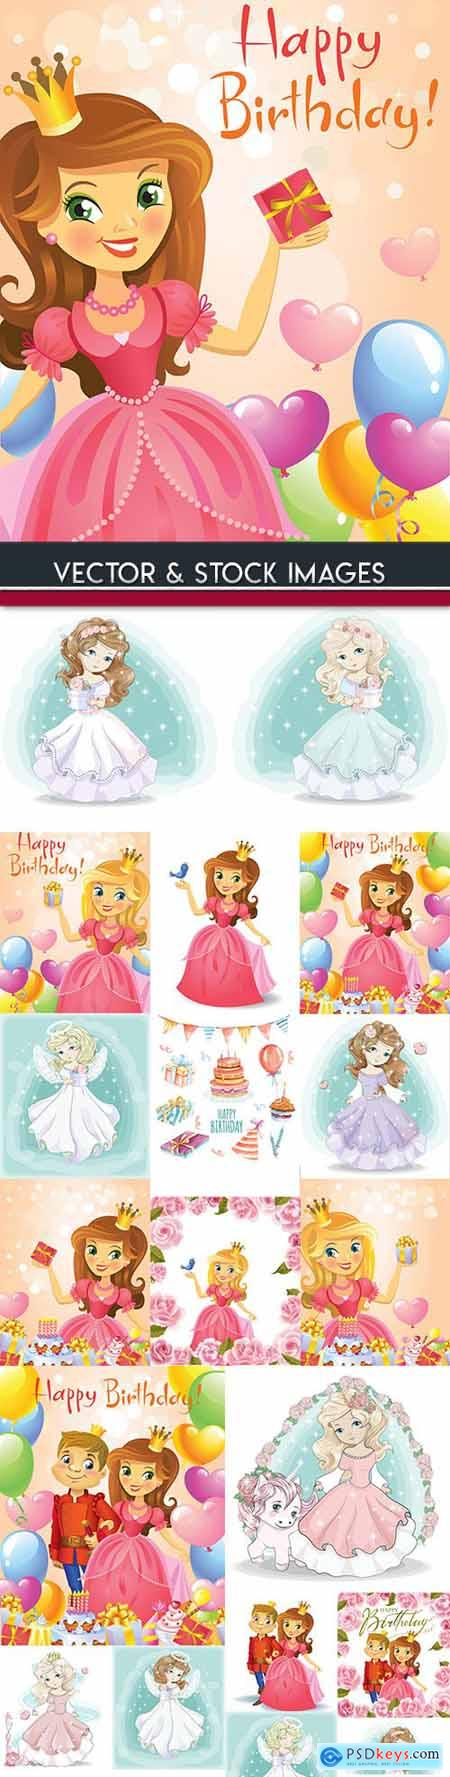 Fabulous princess with flowers for birthday illustration